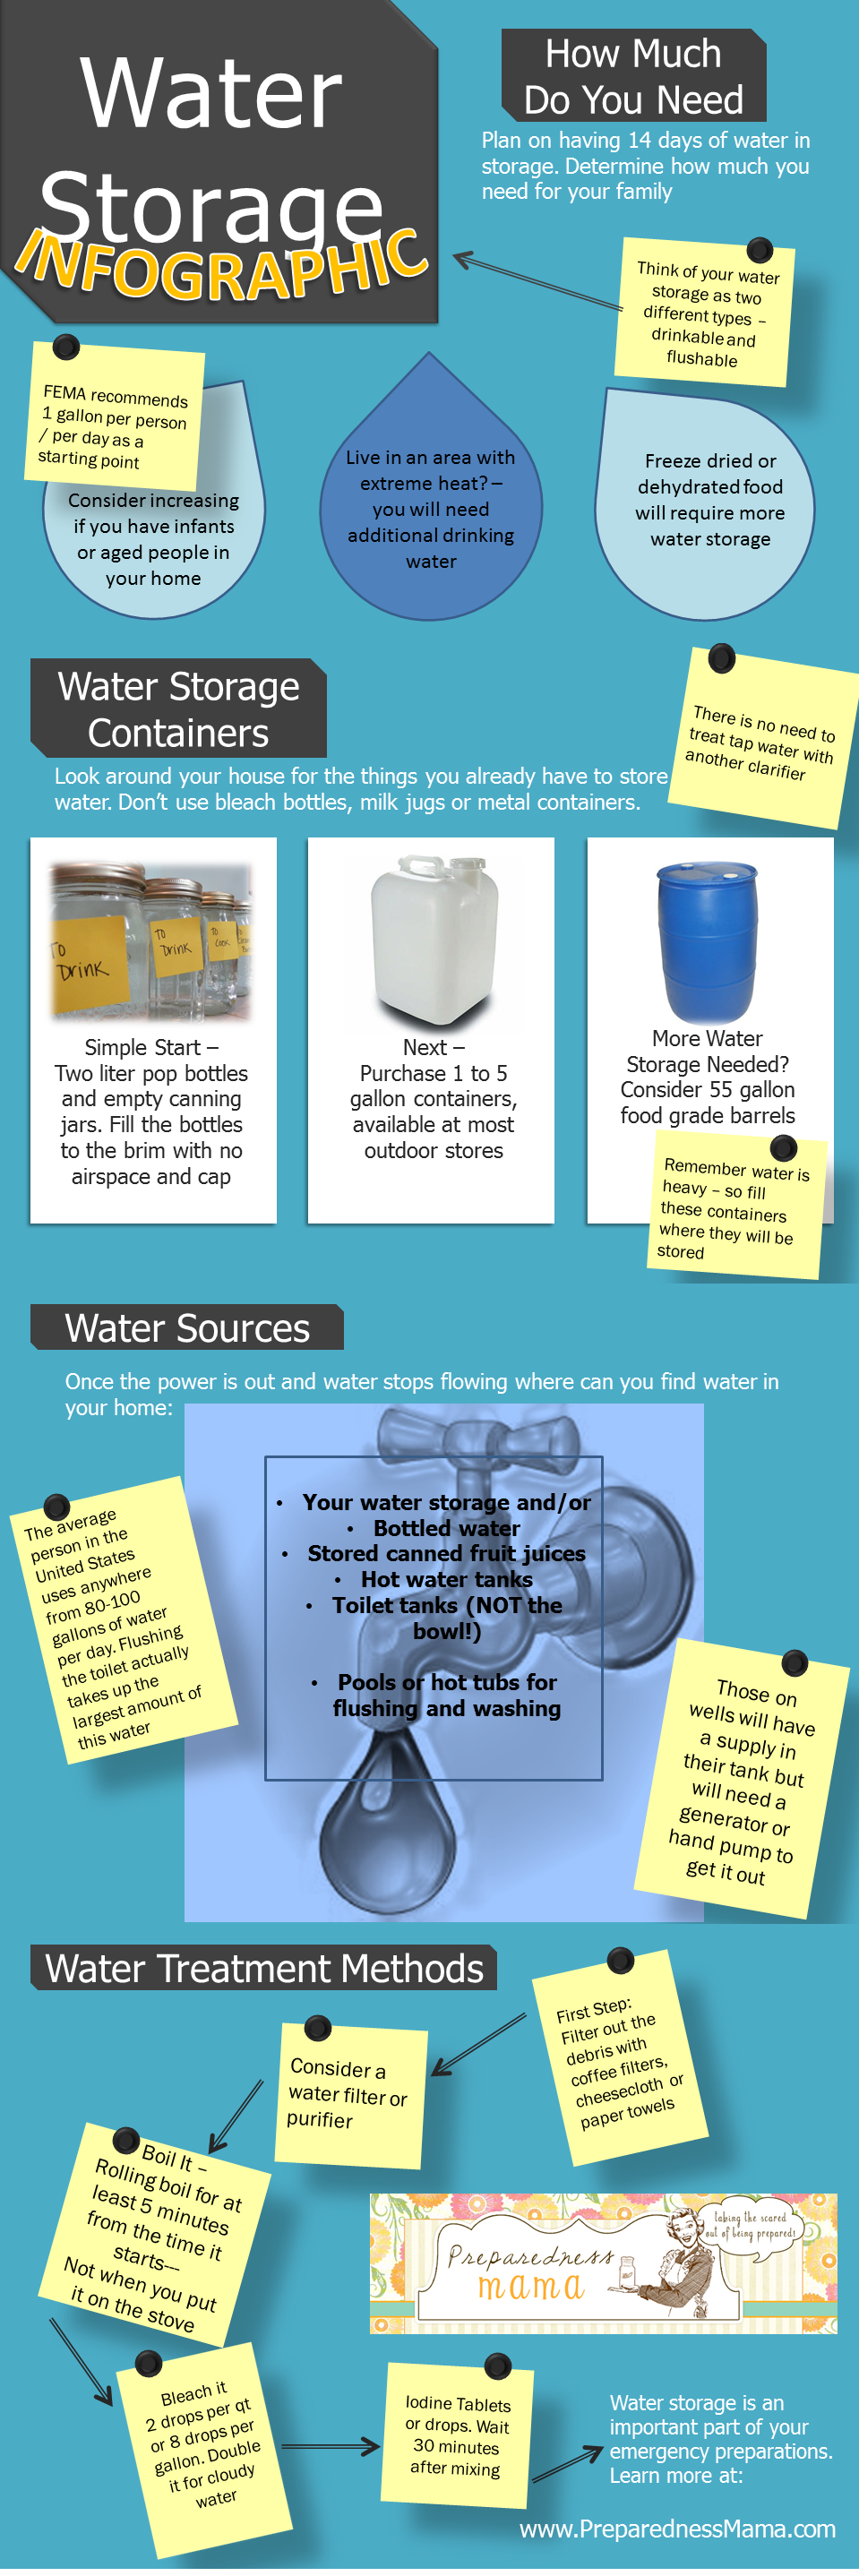 water storage basics infographic for preppers